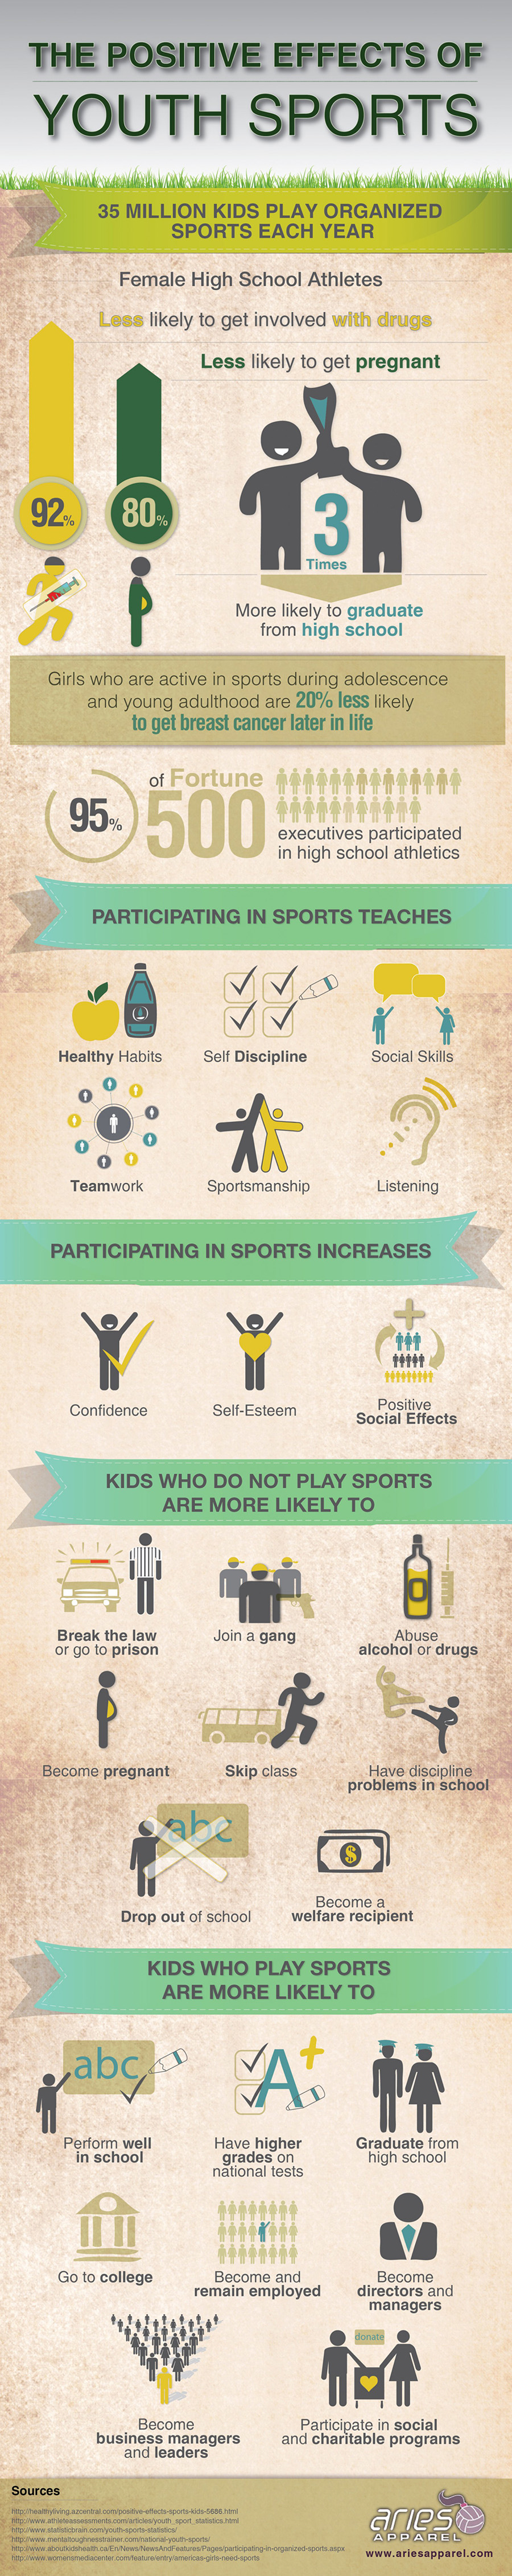 sports participation benefits your kids